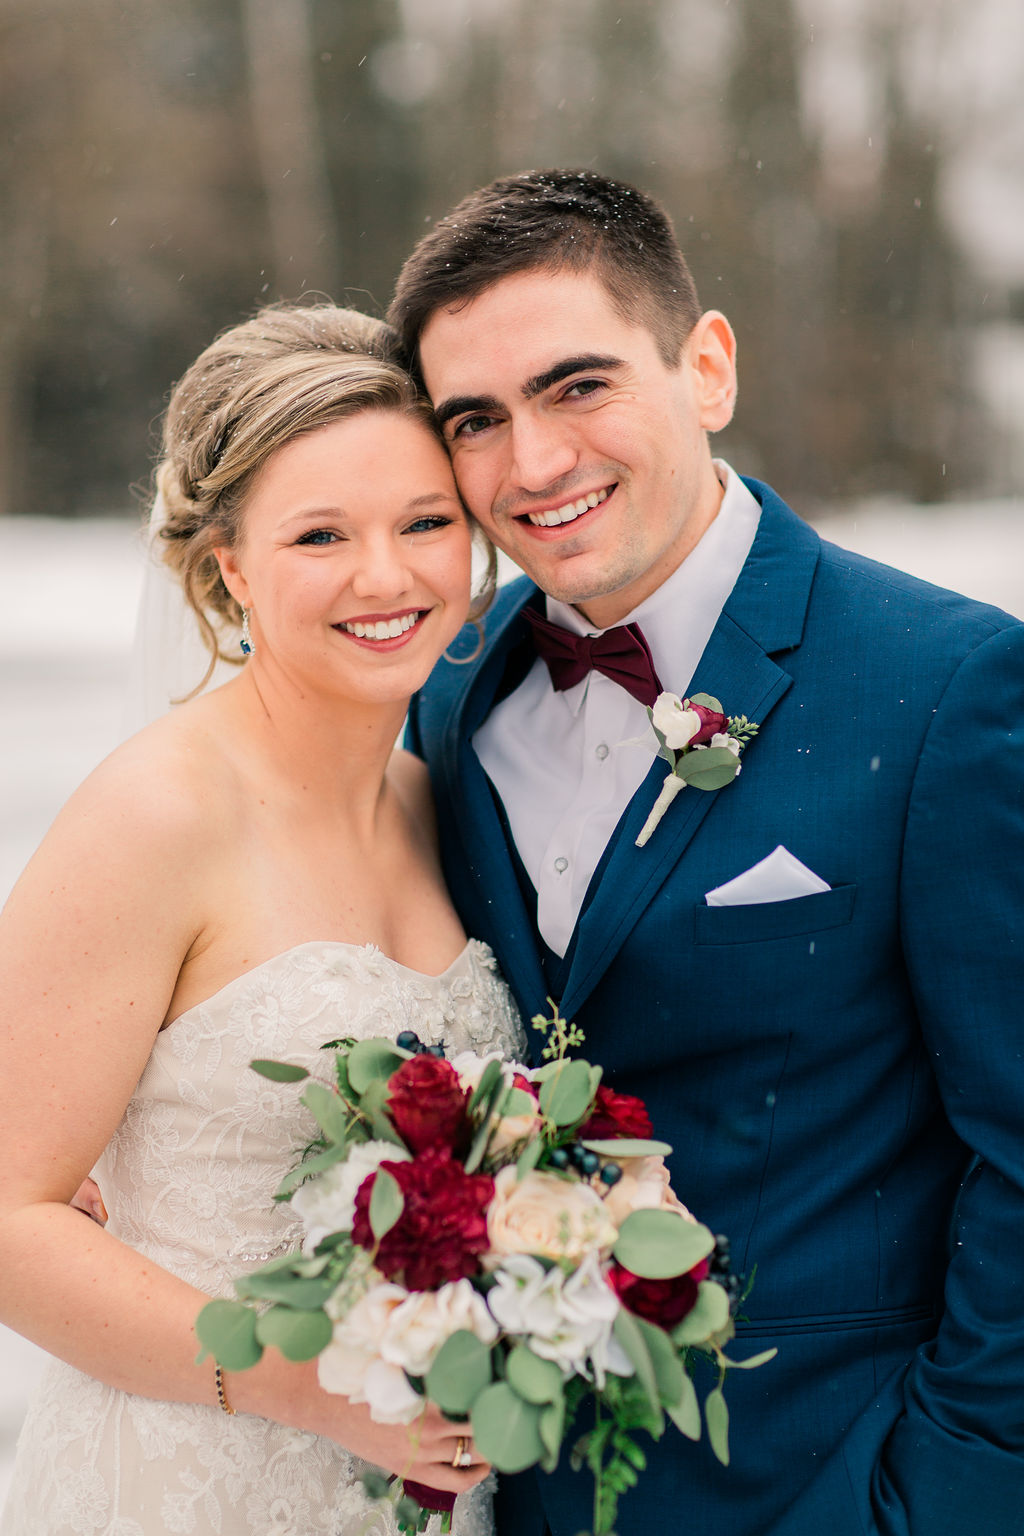 katie_graham_photography_wedding_photographer_bemus_point_jamestown_lakewood_new_york.jpeg